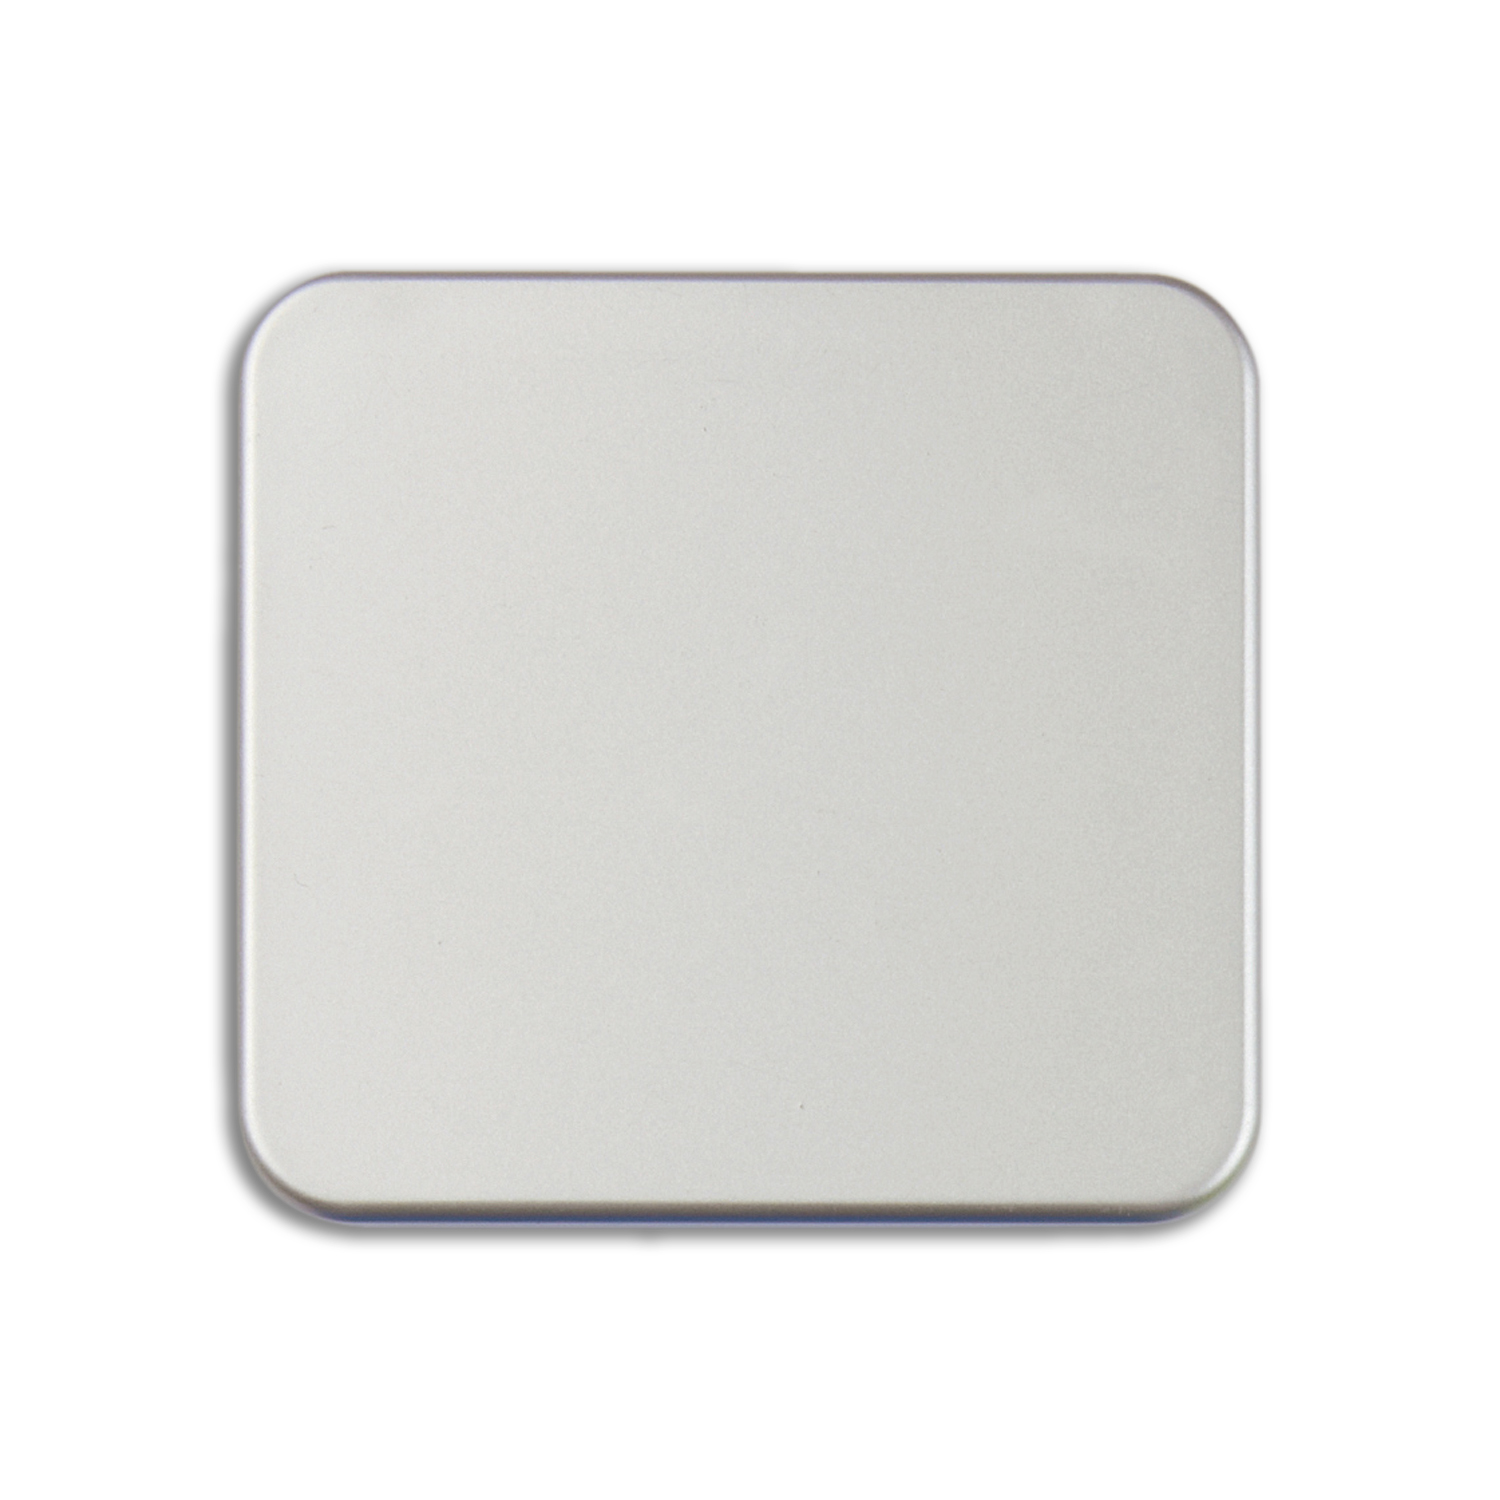 Dual Magnification Folding Mirror-Square